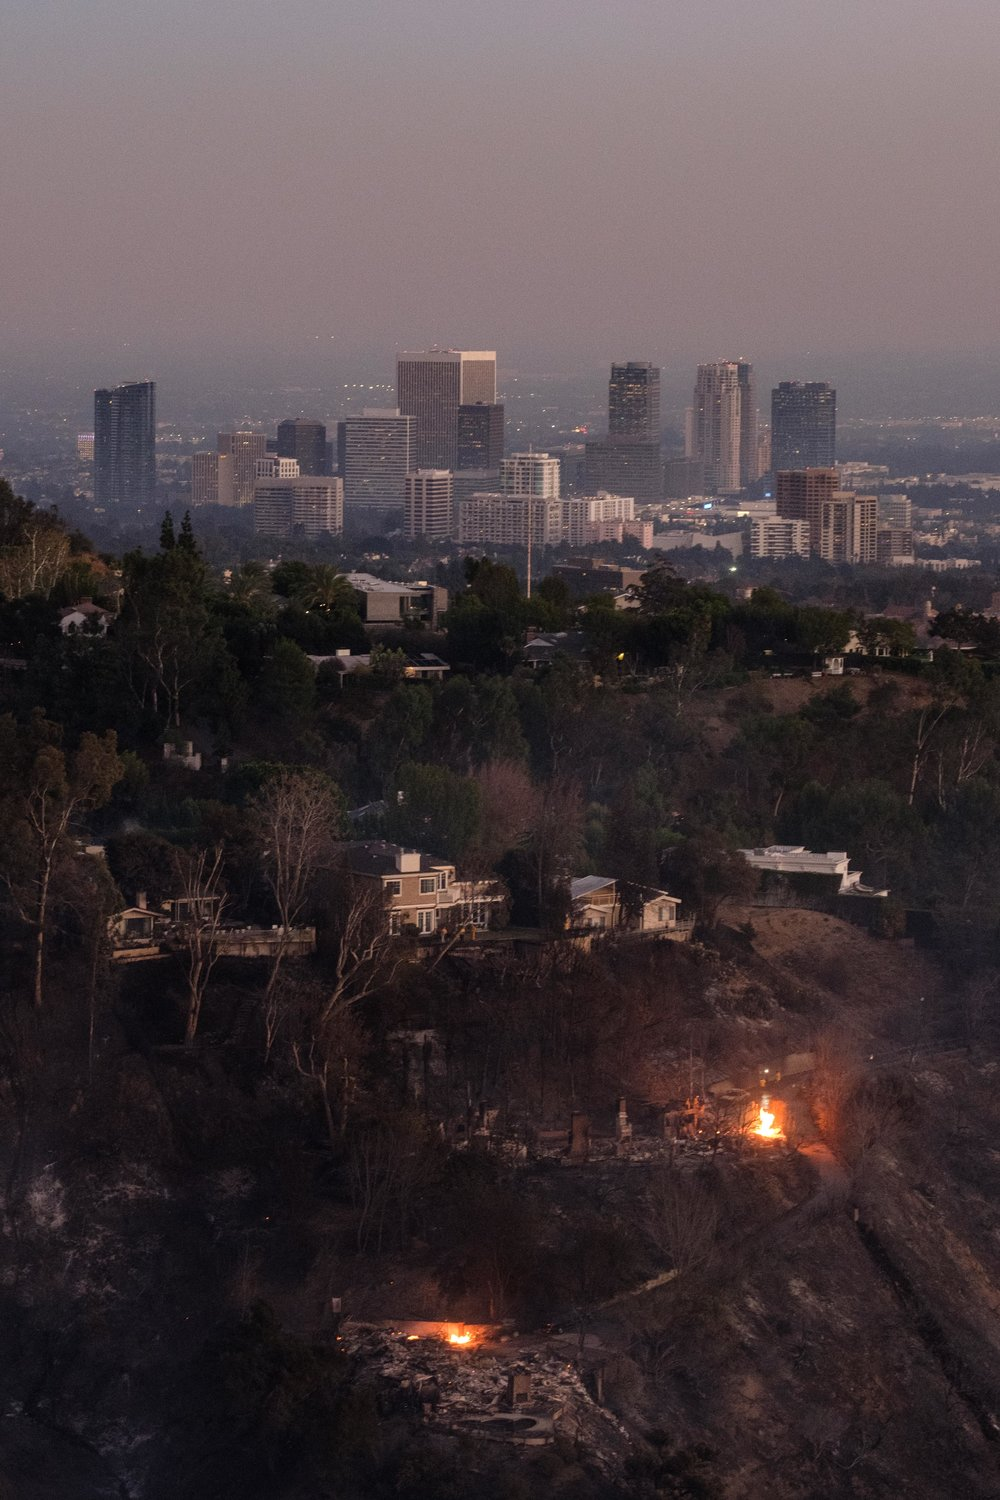 Houses turned to rubble by the Skirball Fire that started in the early morning in Los Angeles, Calif. On Dec. 6, 2017. (Photo by Jayrol San Jose)